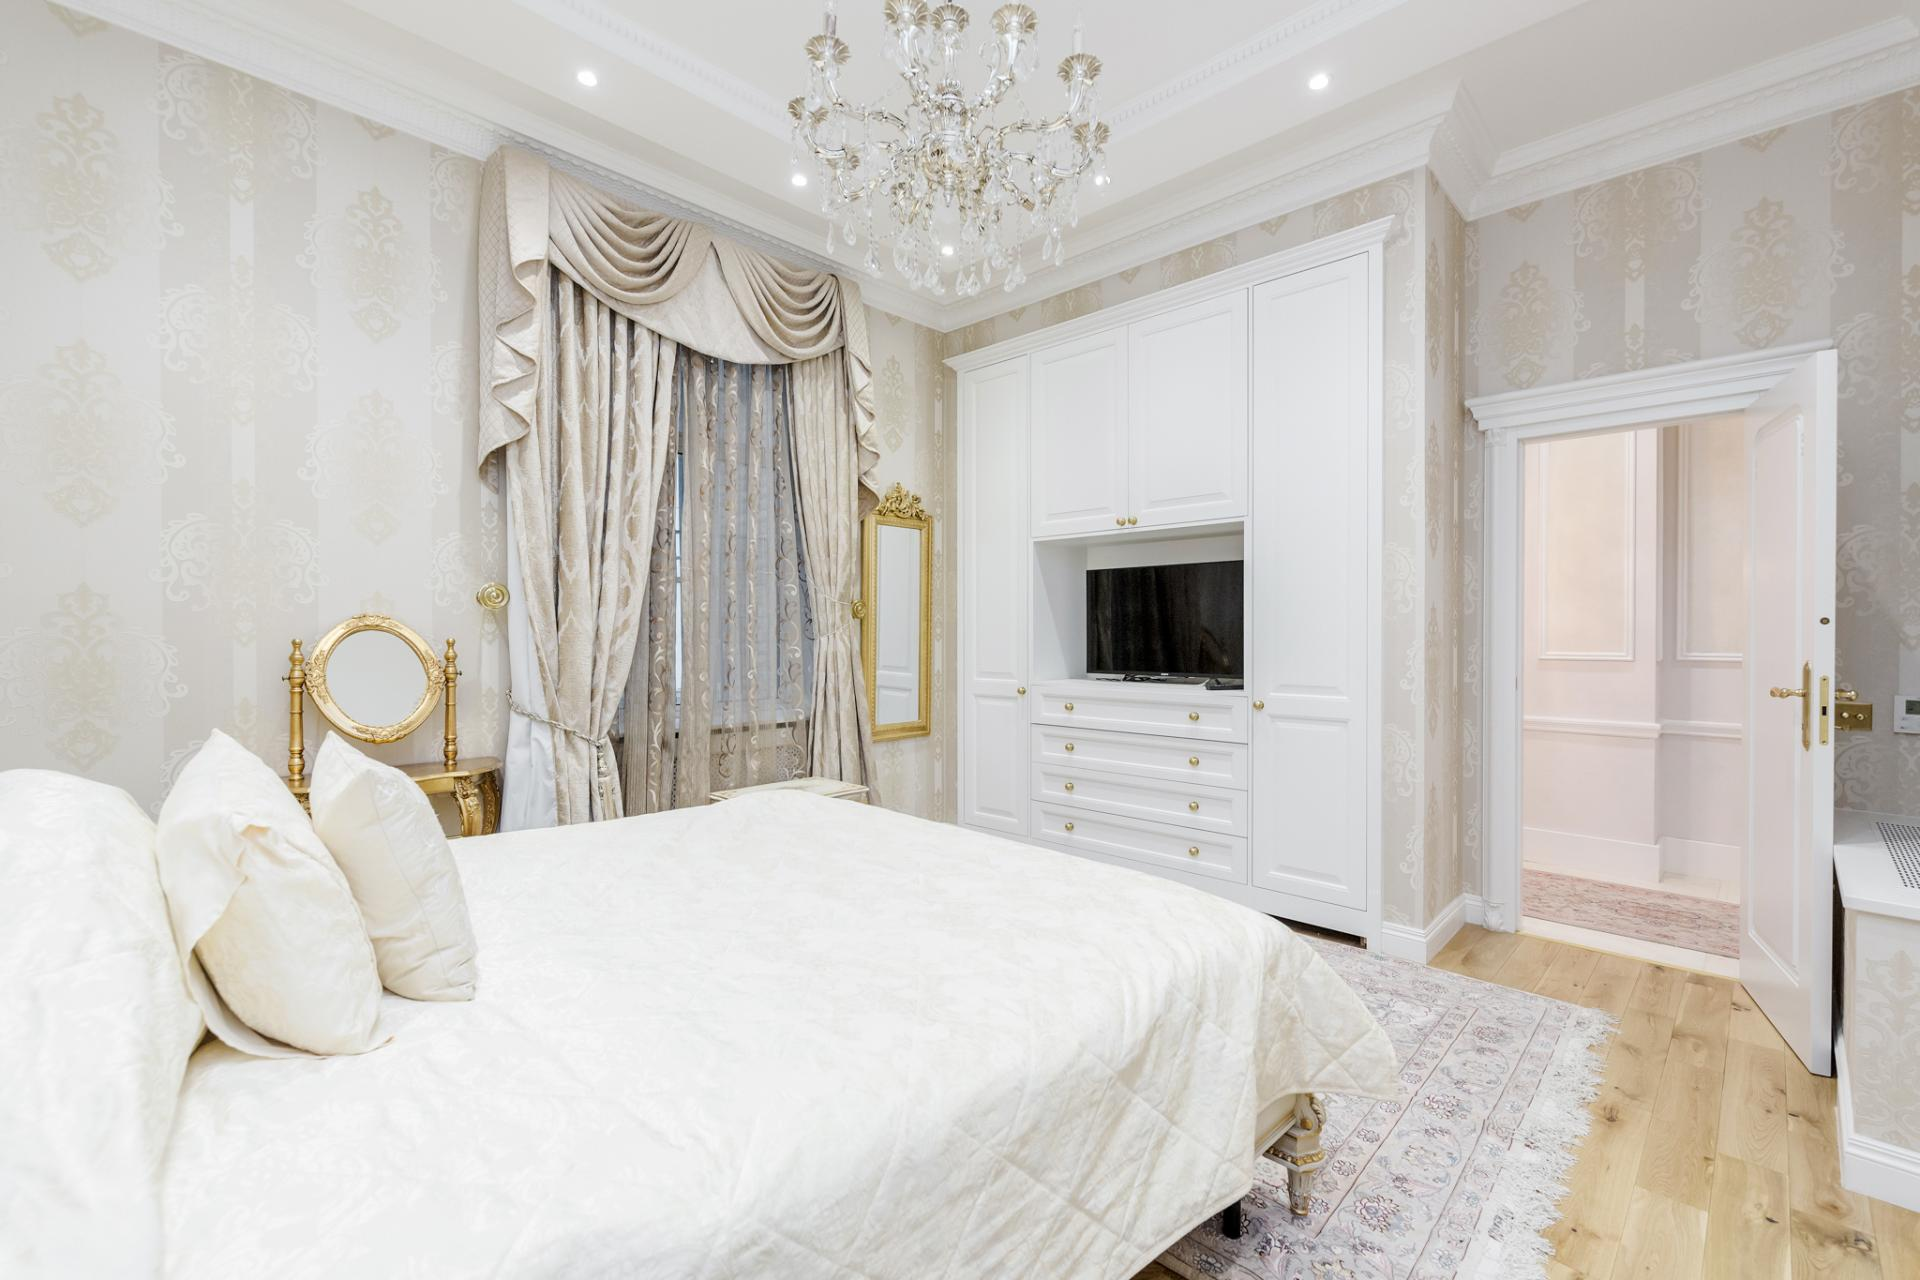 Bed at Grosvenor Square Apartment, Mayfair, London - Citybase Apartments